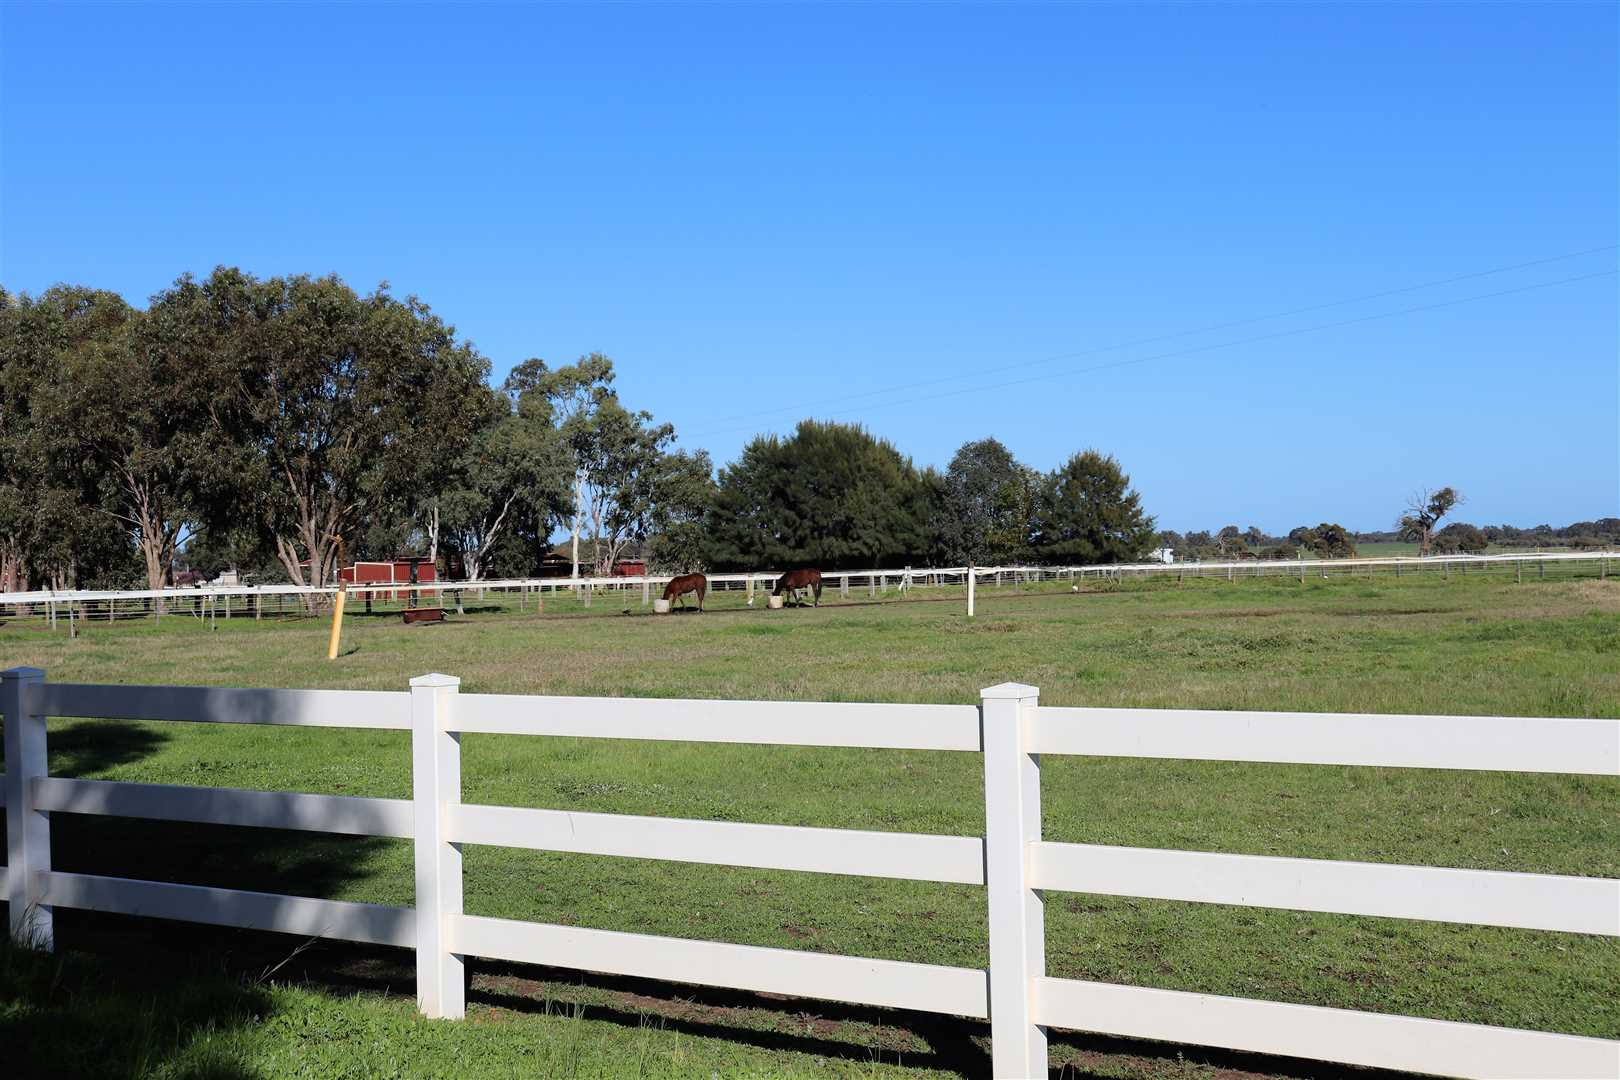 paddocks with post and rail fencing